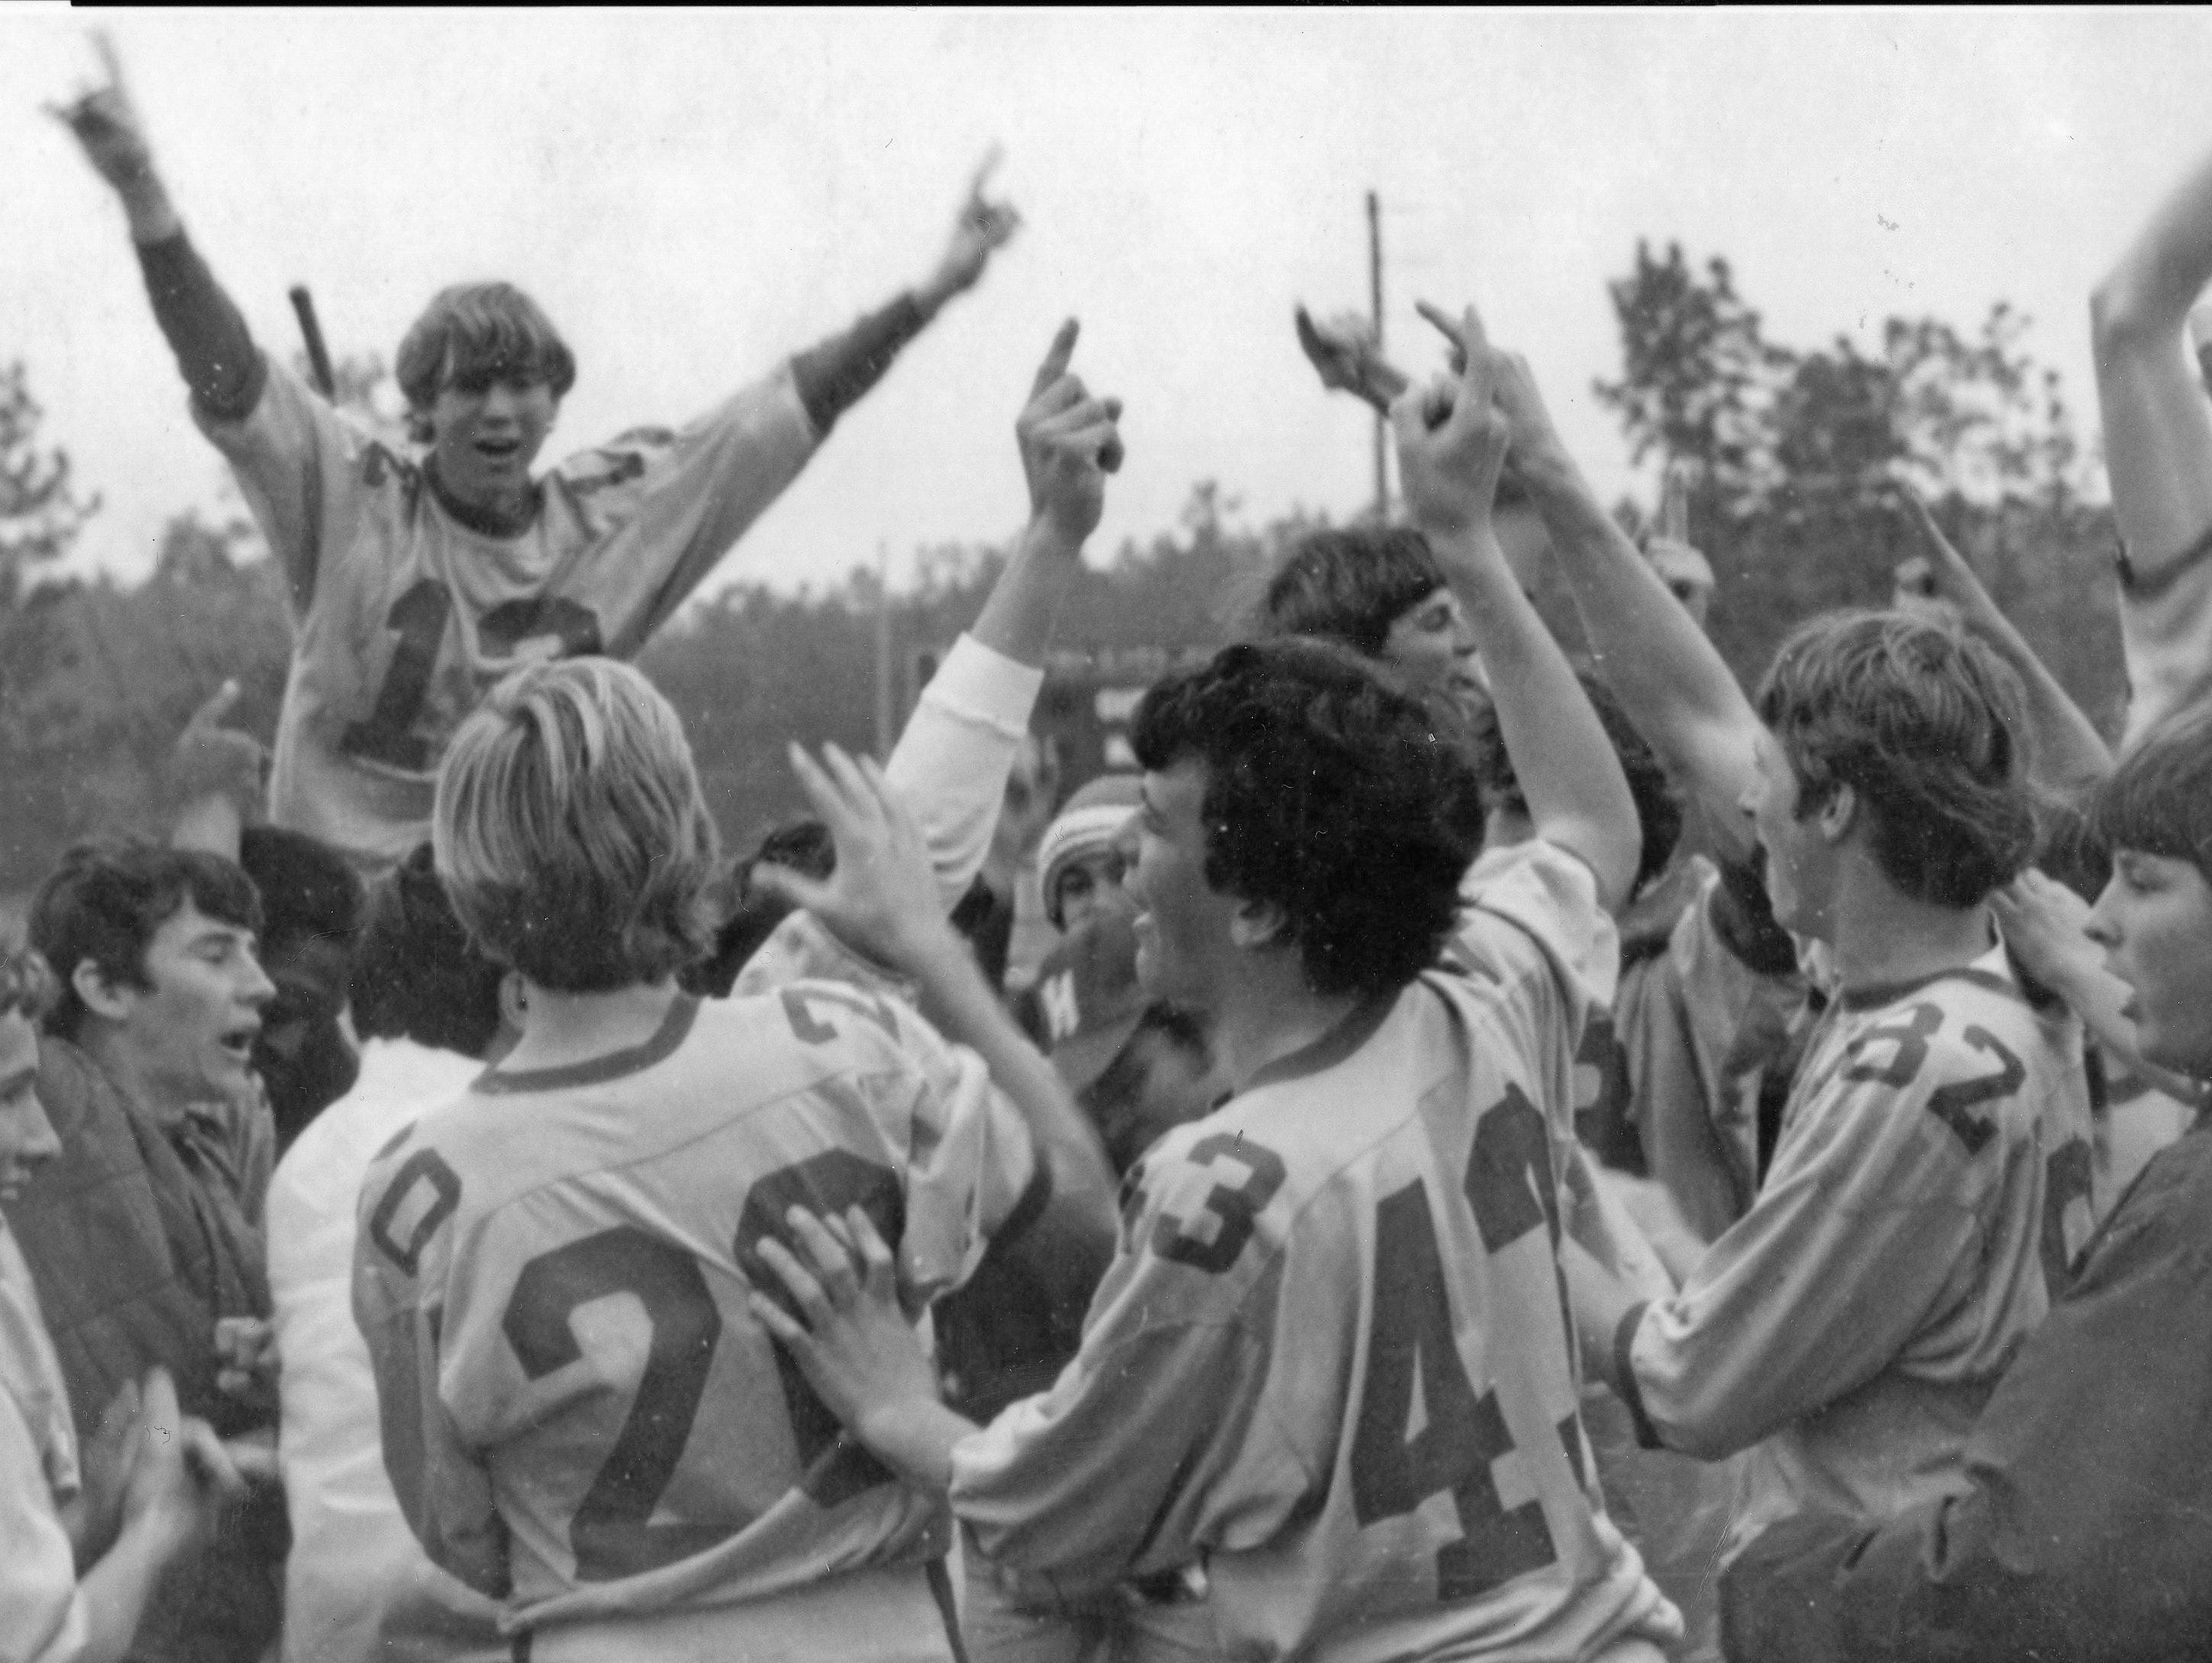 The Wade Hampton soccer team celebrates after winning the 1974 state championship.